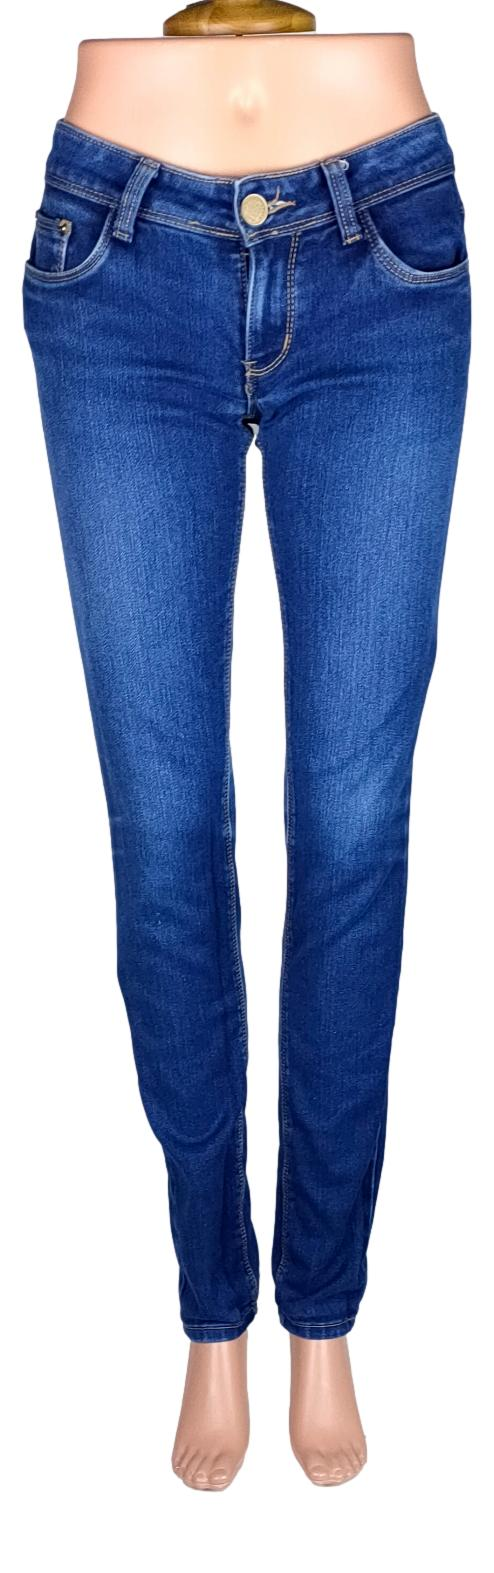 Jean R.Display - Taille 36